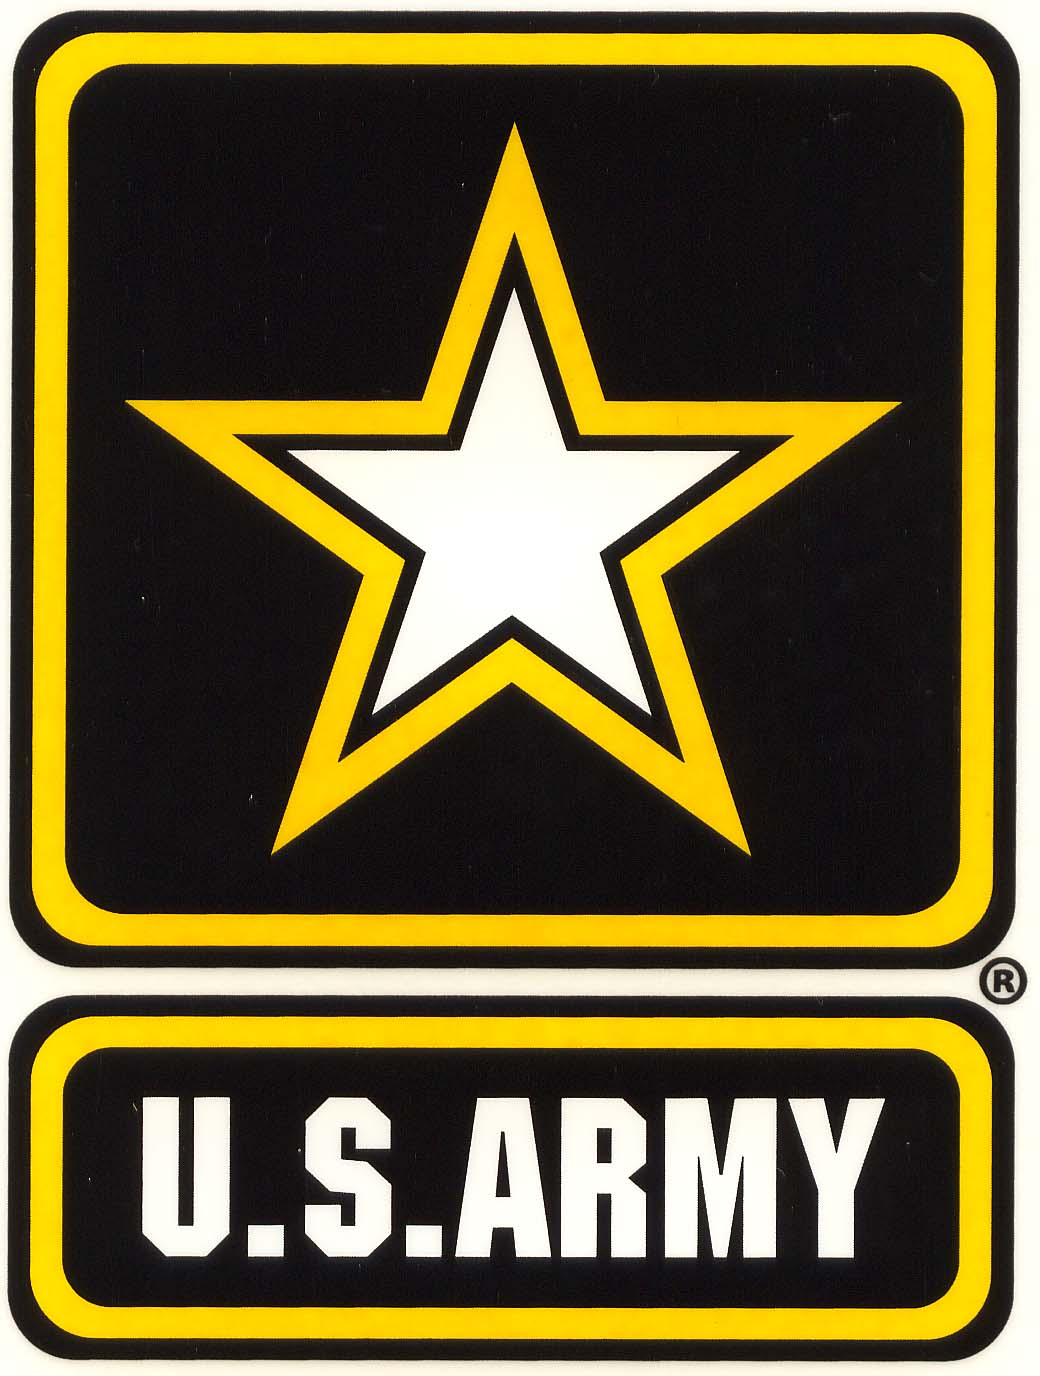 Army Logo Clipart.